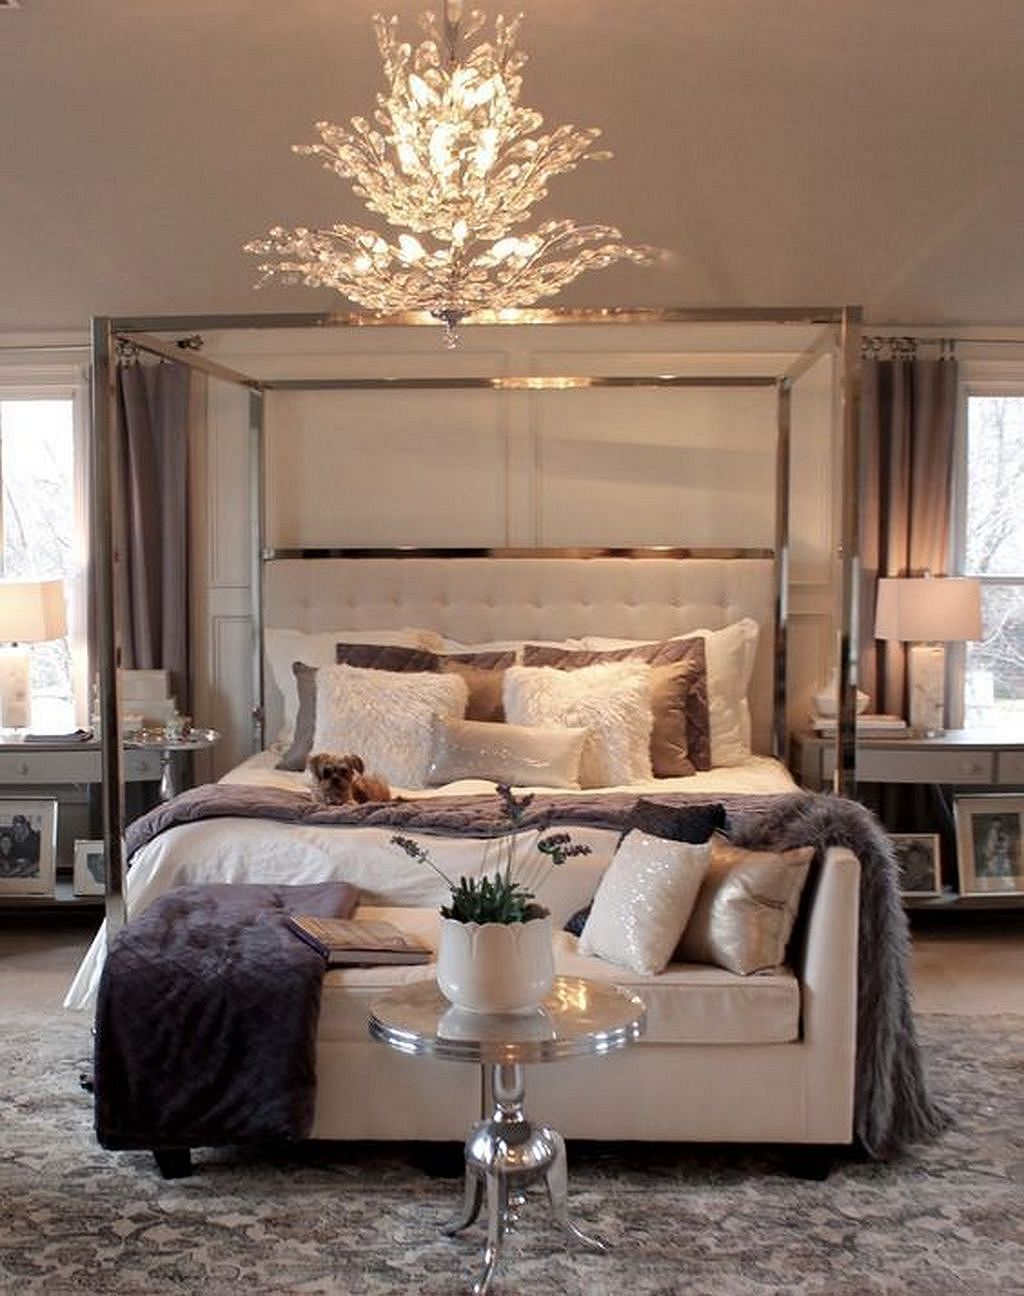 20 Elegant Small Master Bedroom Ideas Decorating - images ...